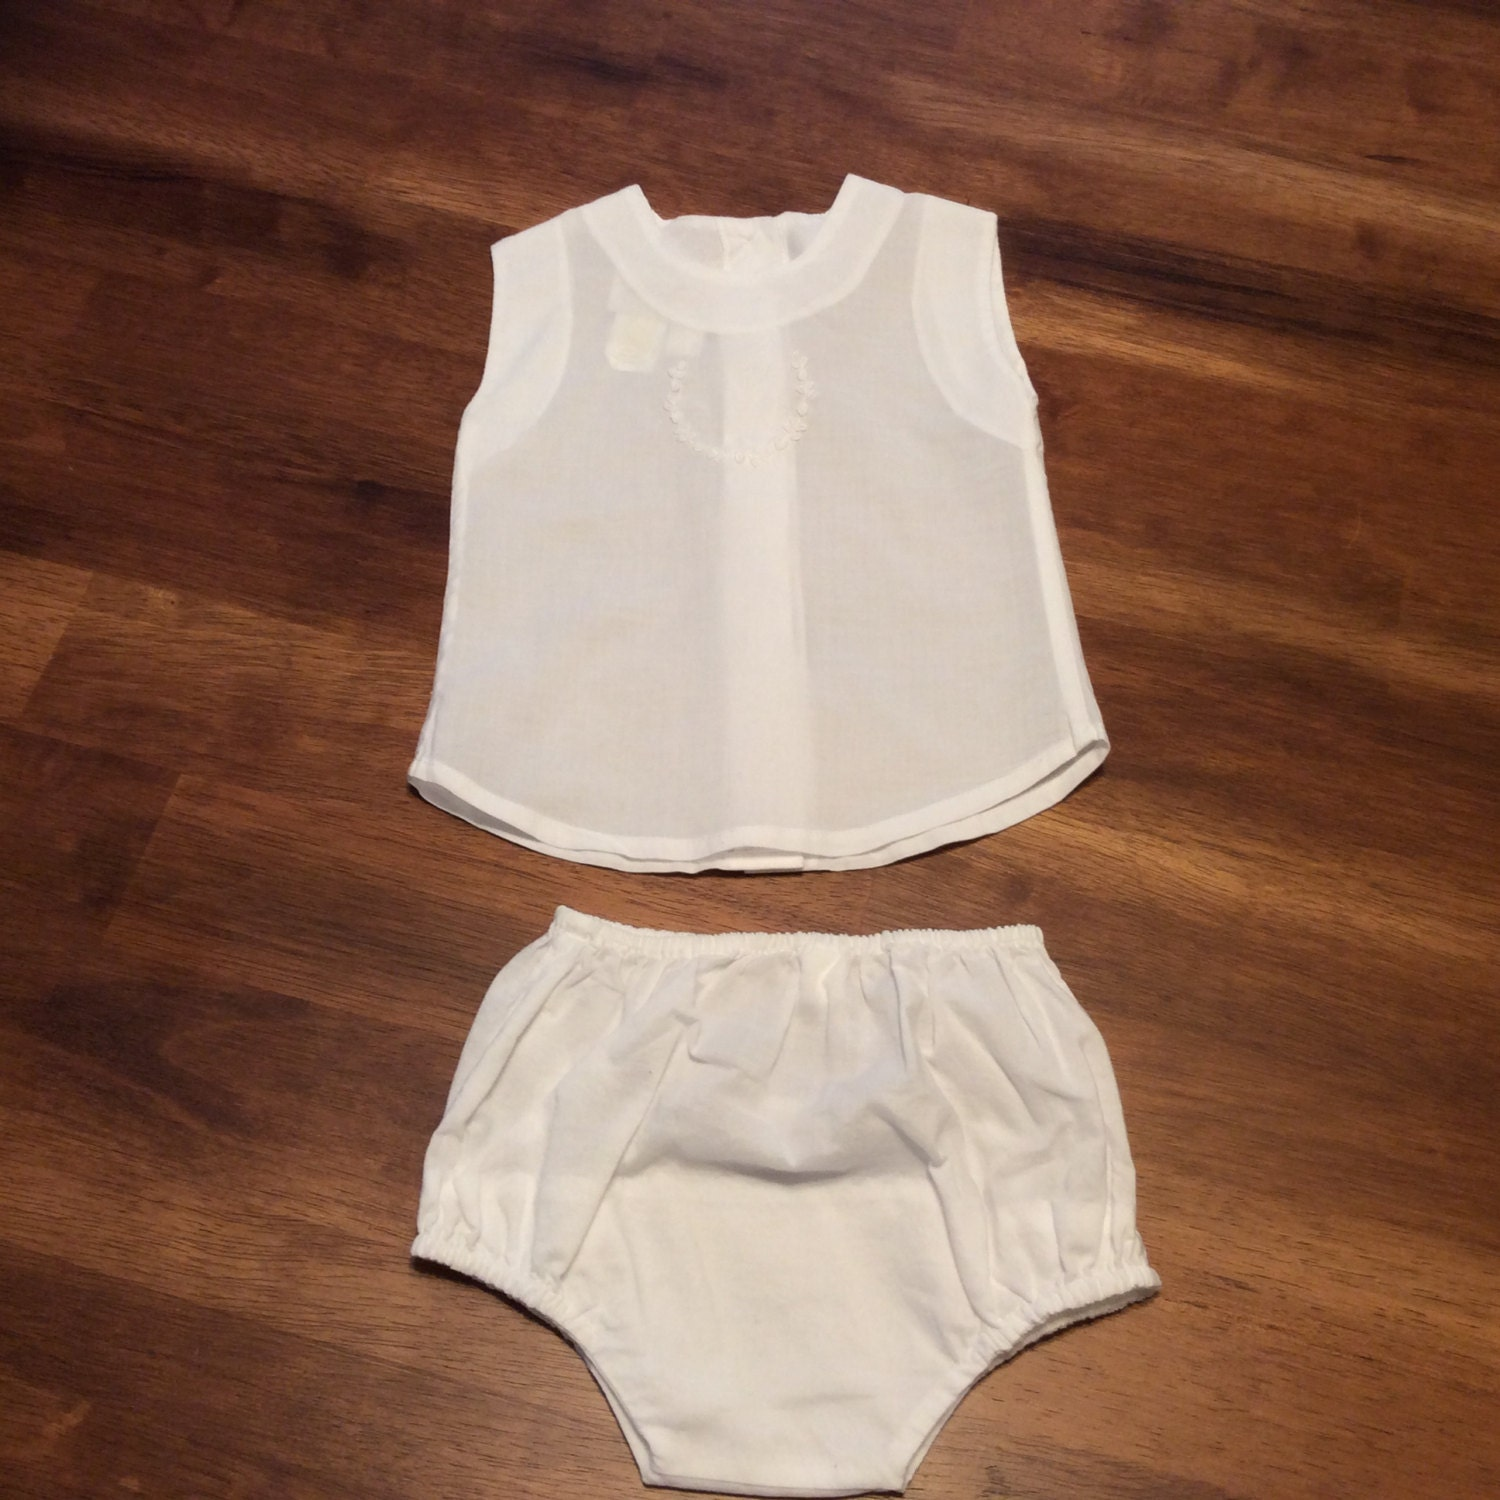 Vintage Baby Diaper Shirt And Shorts Set Newborn Embroidered